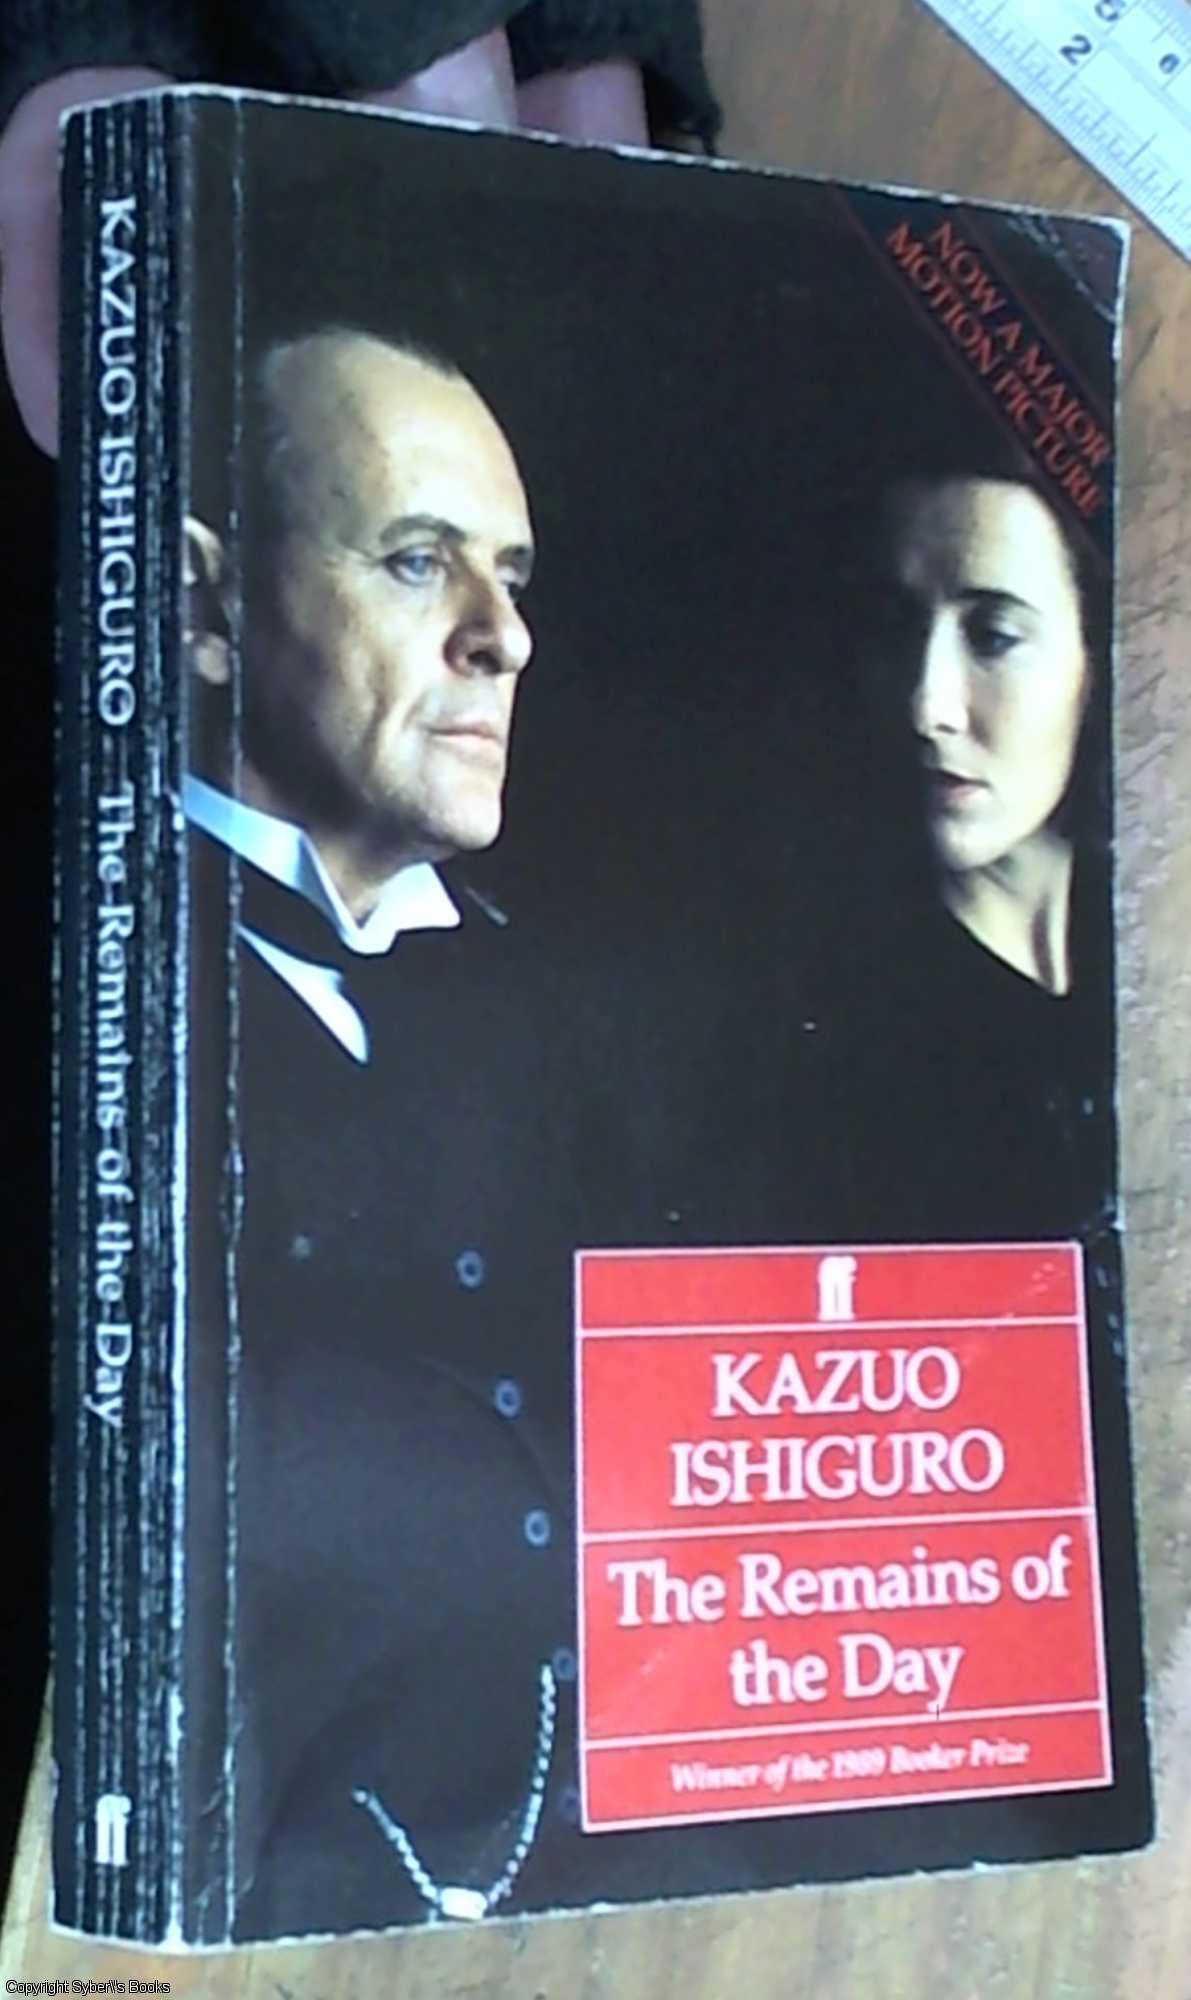 an overview of kazuo ishiguros story the remains of the day Empathy in kazuo ishiguros never let me go by: kazuo ishiguro (the remains of the day) kazuo ishiguro tells the story of etsuko.